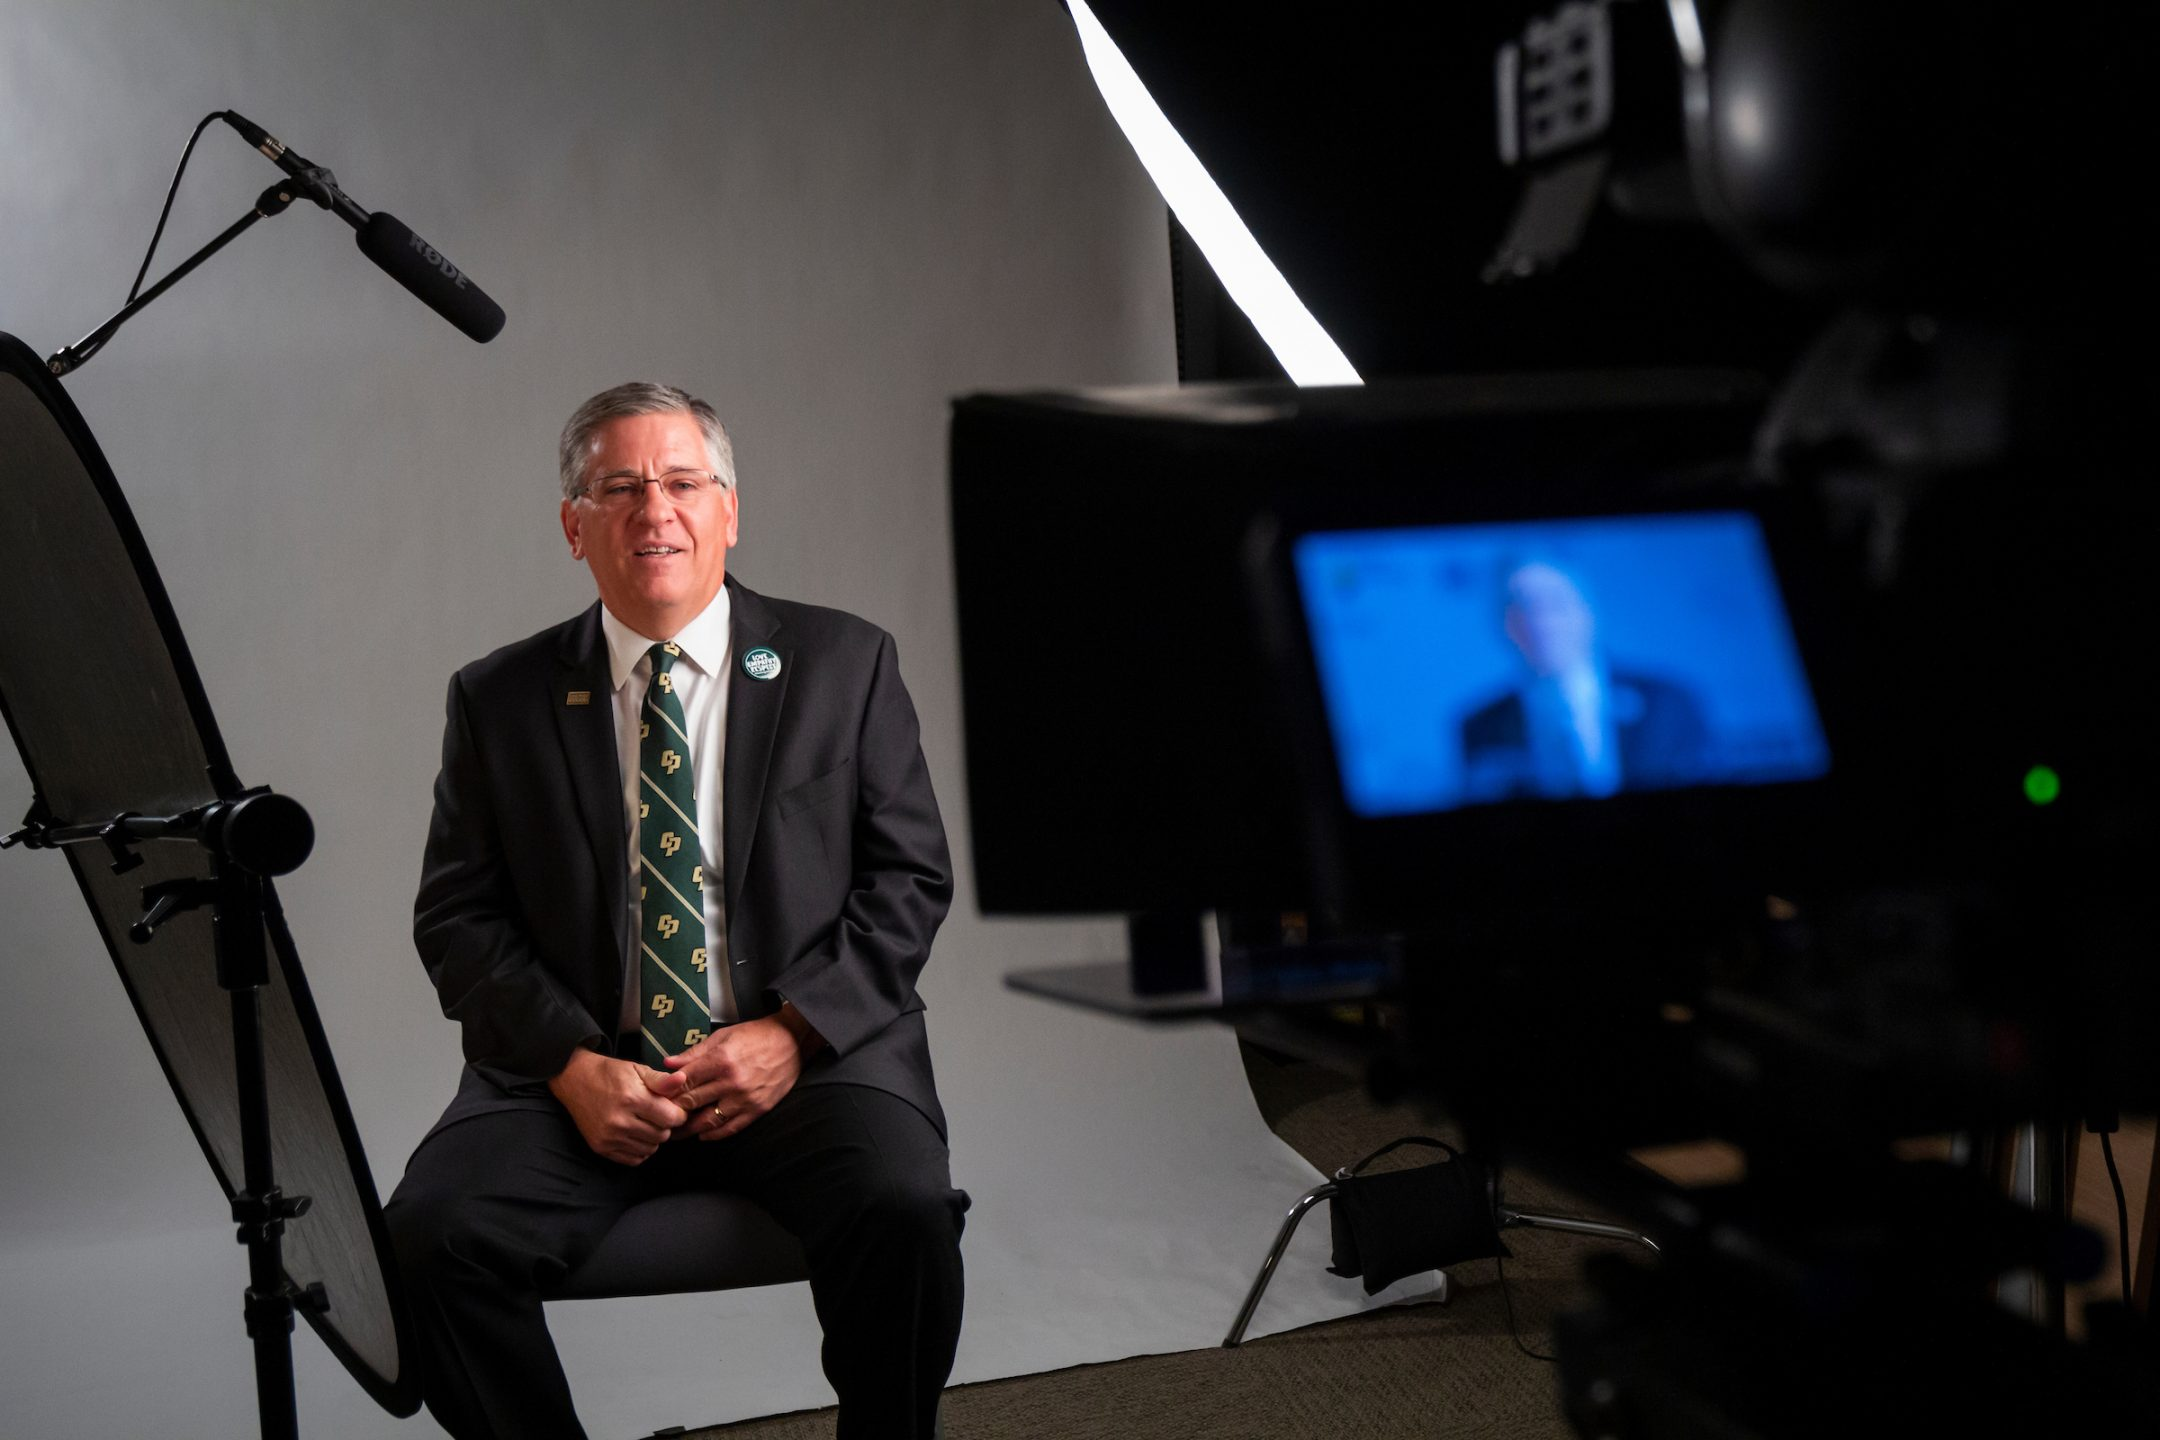 President Armstrong, in a suit and Cal Poly tie, speaks into a video camera and microphone in front of a white backdrop